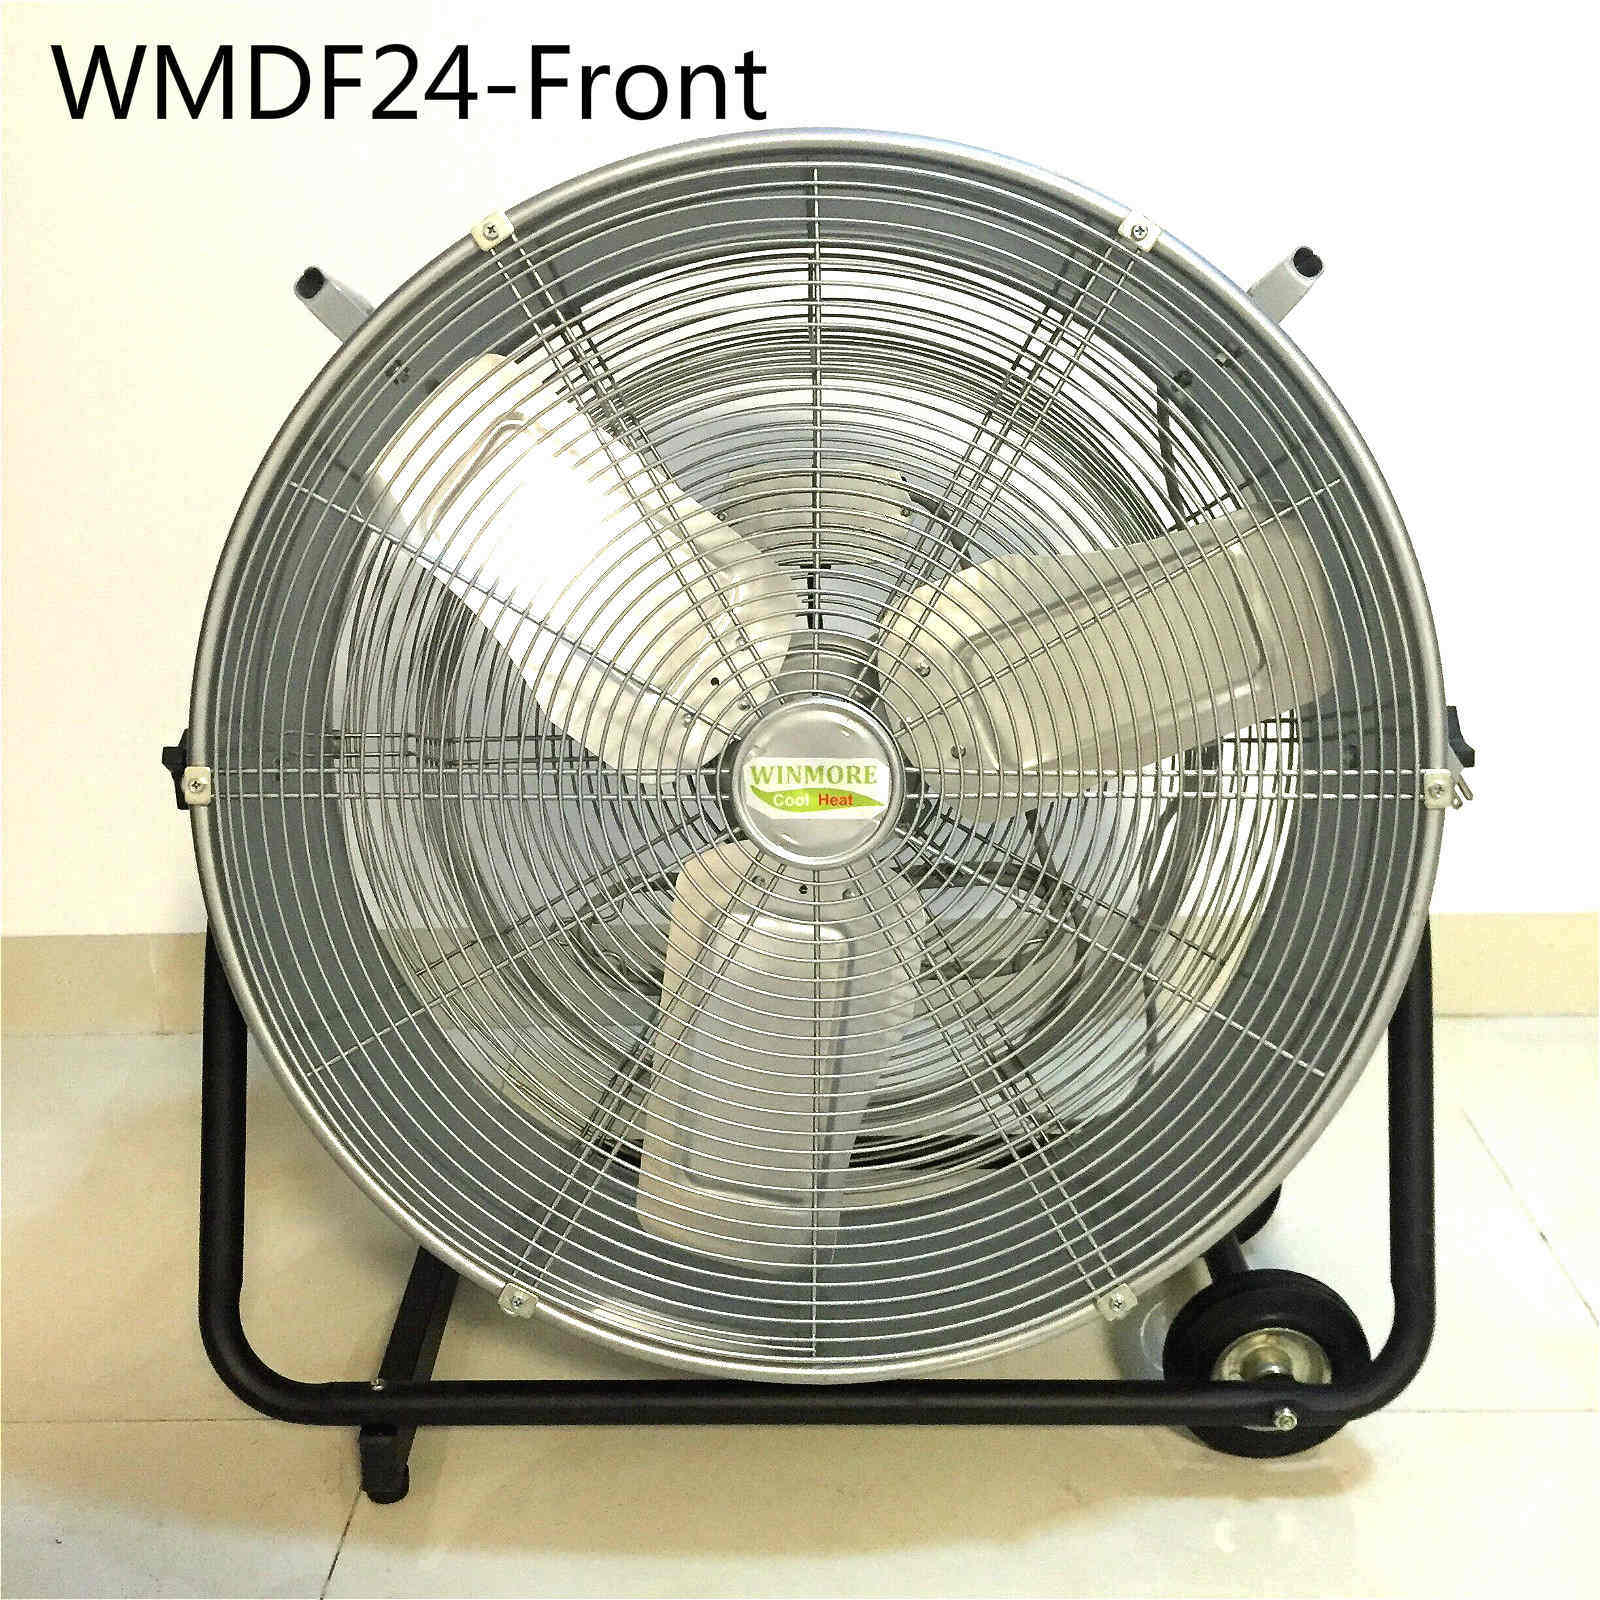 Garage Workshop Fan Hot Item Rubber Wheel Rotary Switch 24 Inch Drum Fan High Velocity Fan Floor Stand Fan For Workshop Warehouse Garage